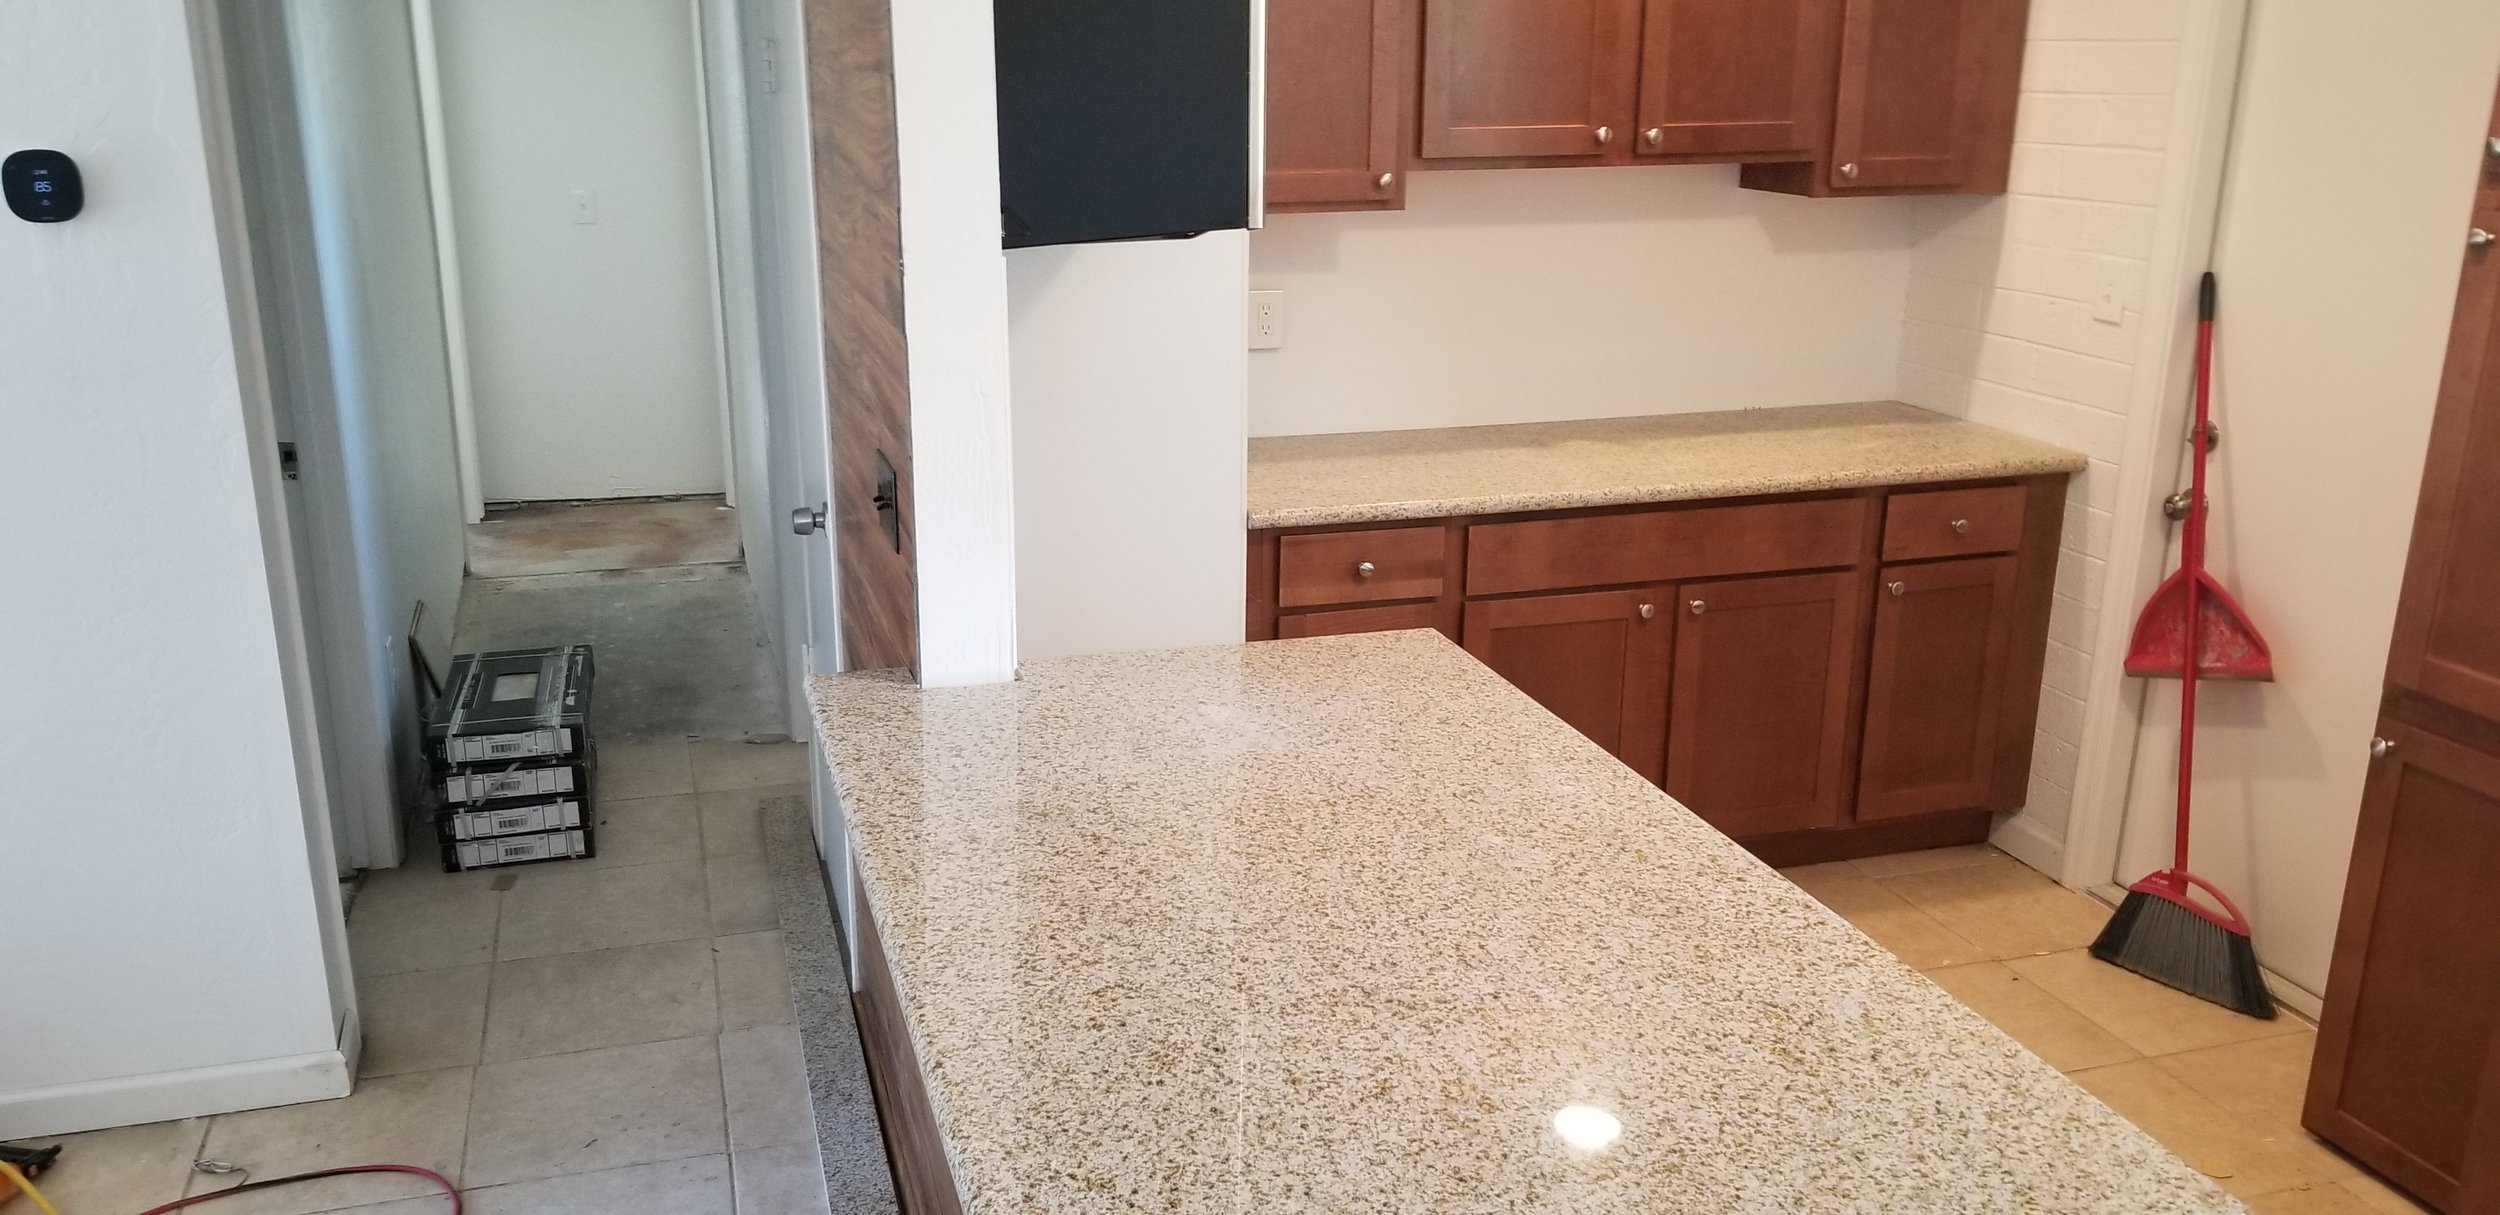 Counters installed